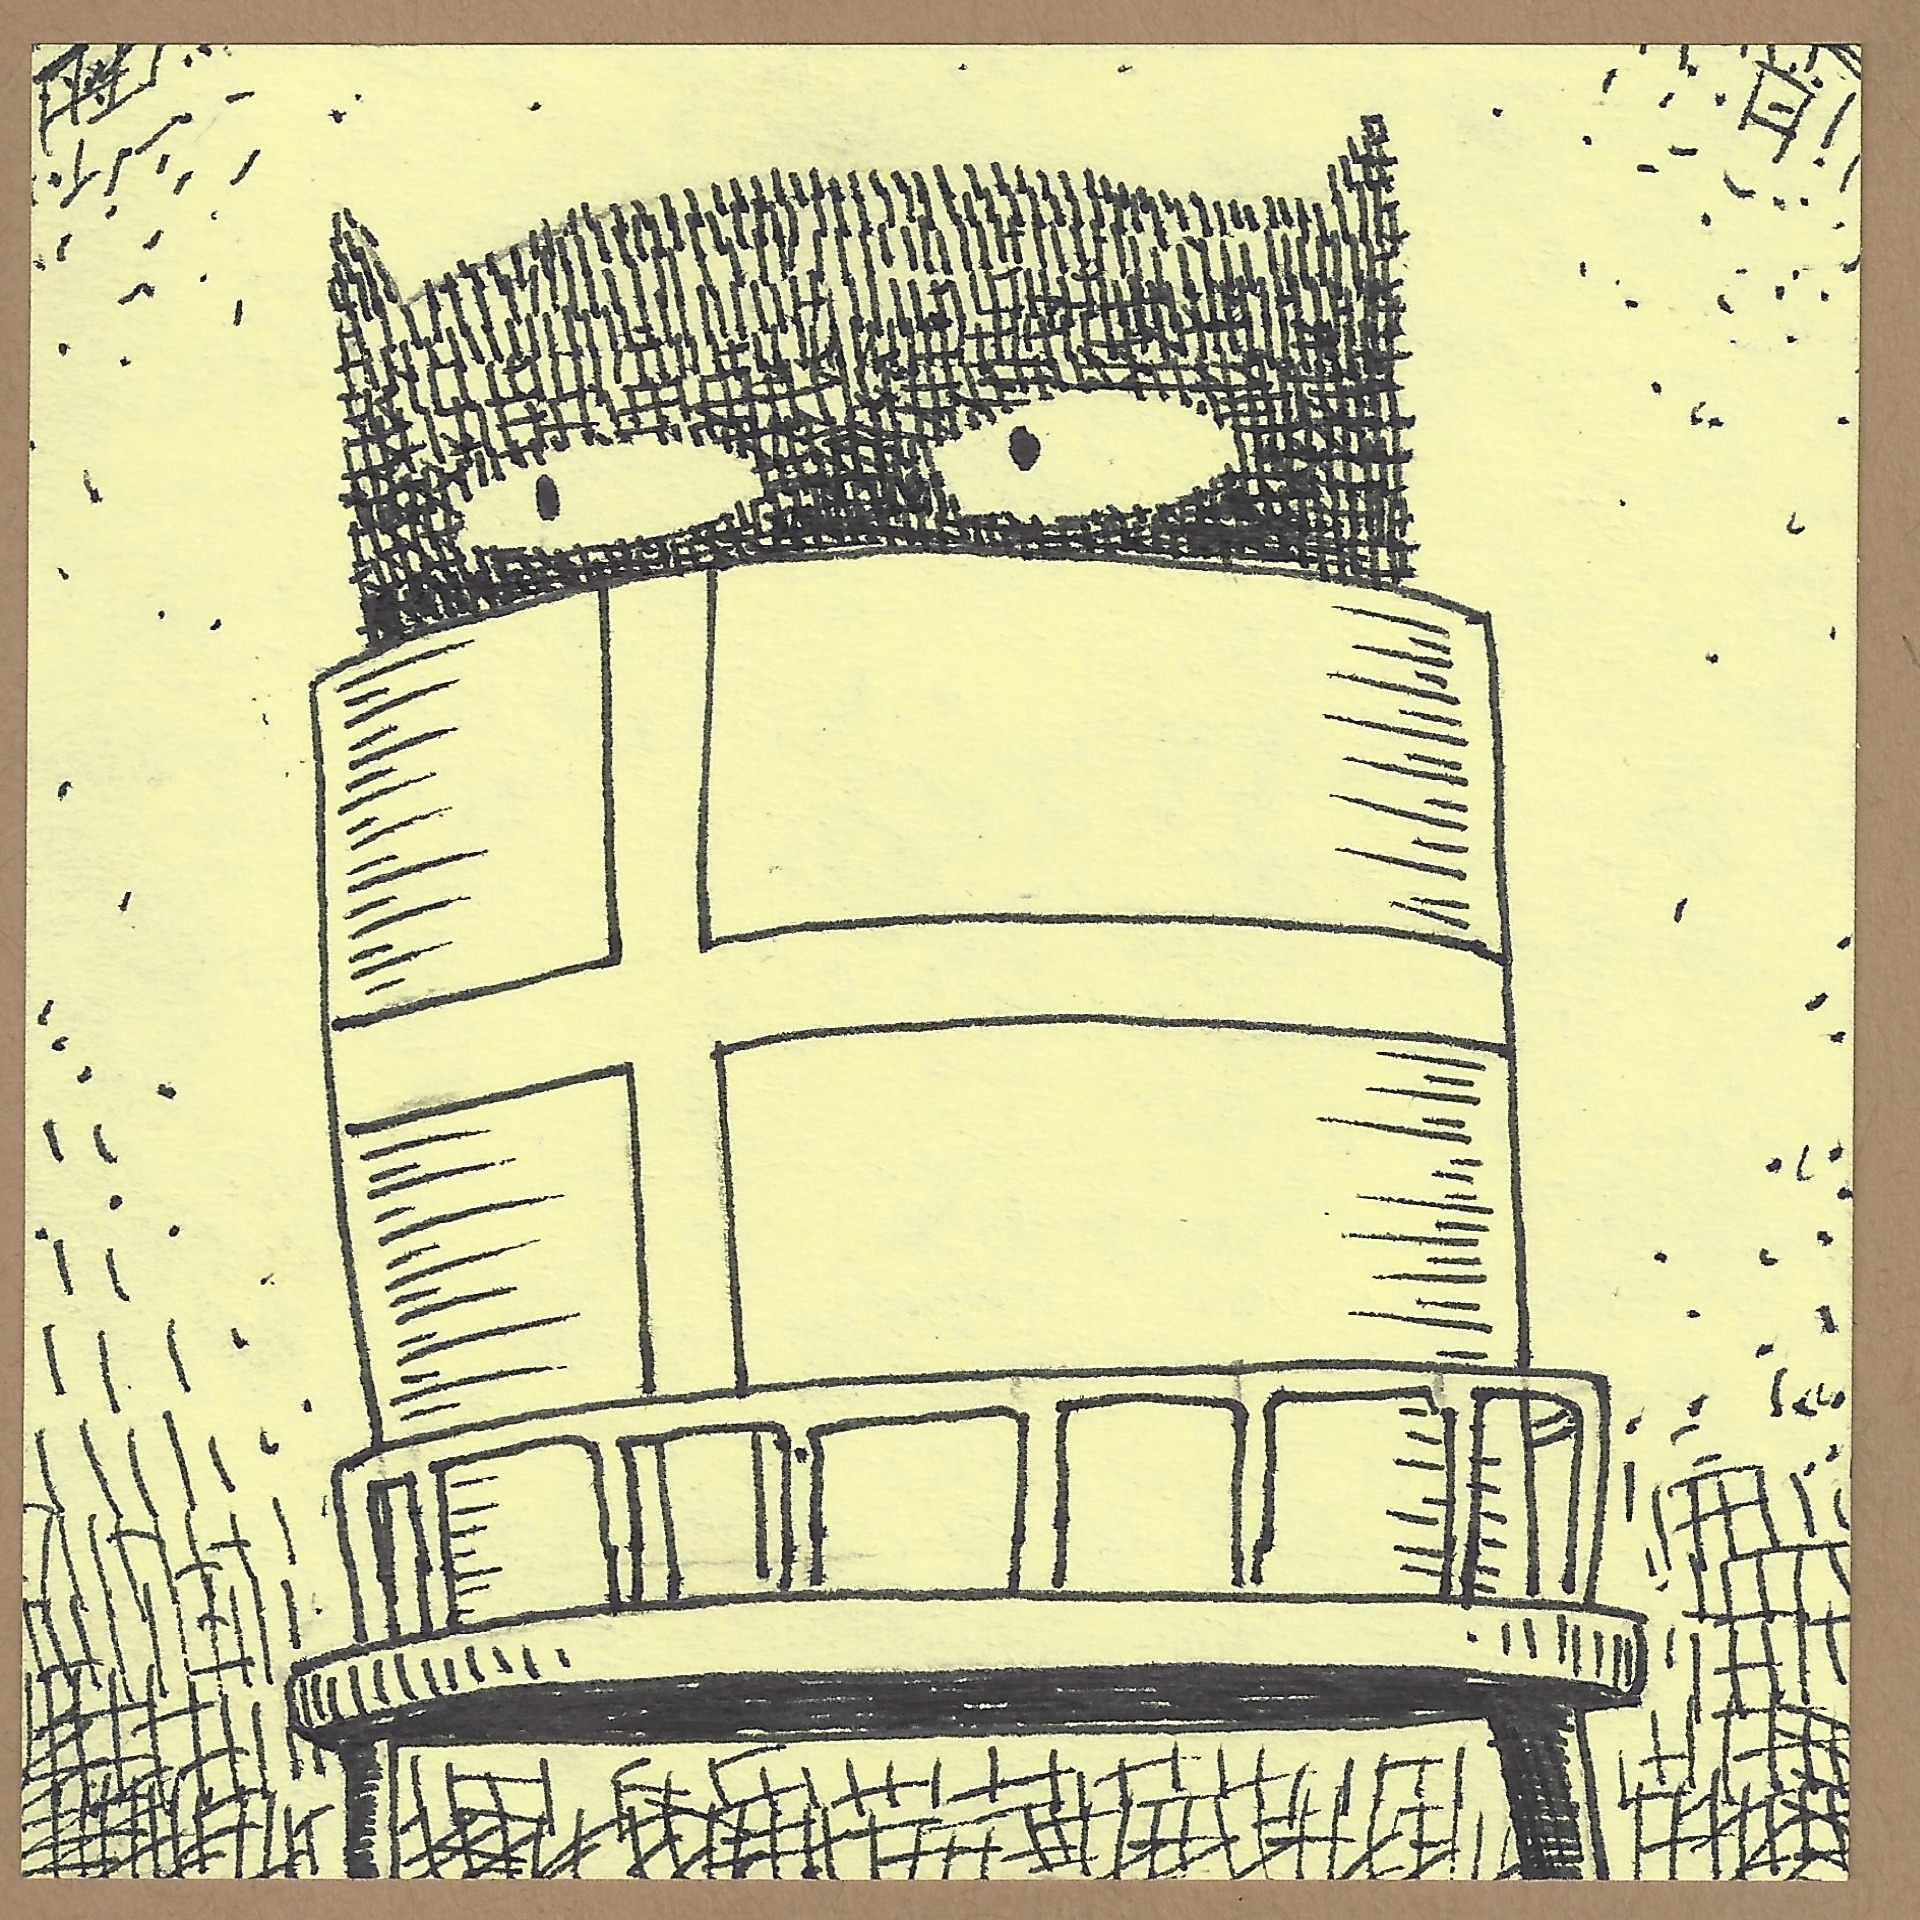 andersonville watertower critter.jpg